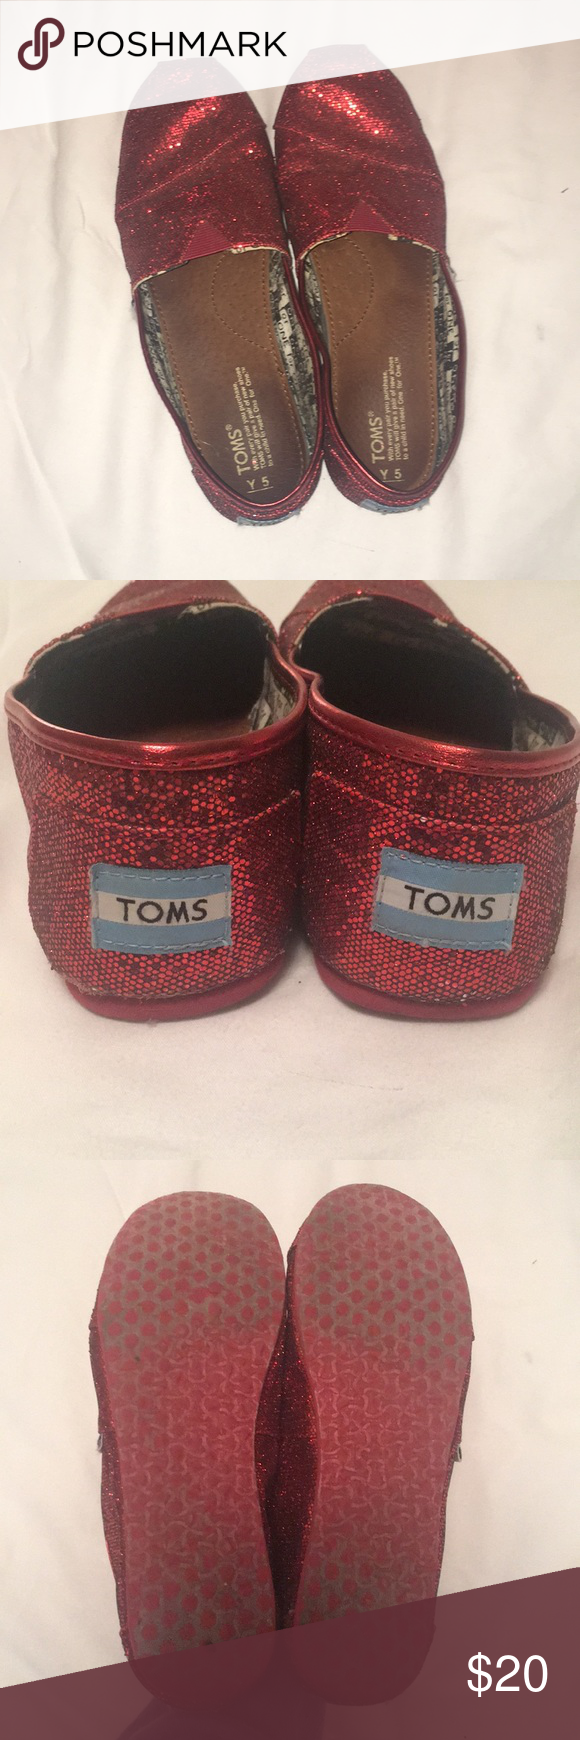 514b9b33446 Sparkly red TOMS shoes size Youth 5 or Women s 7 Dorothy shoes! All over red  sparkles. TOMS brand. Size Youth 5 or a Women s 7. Toms Shoes Dress Shoes